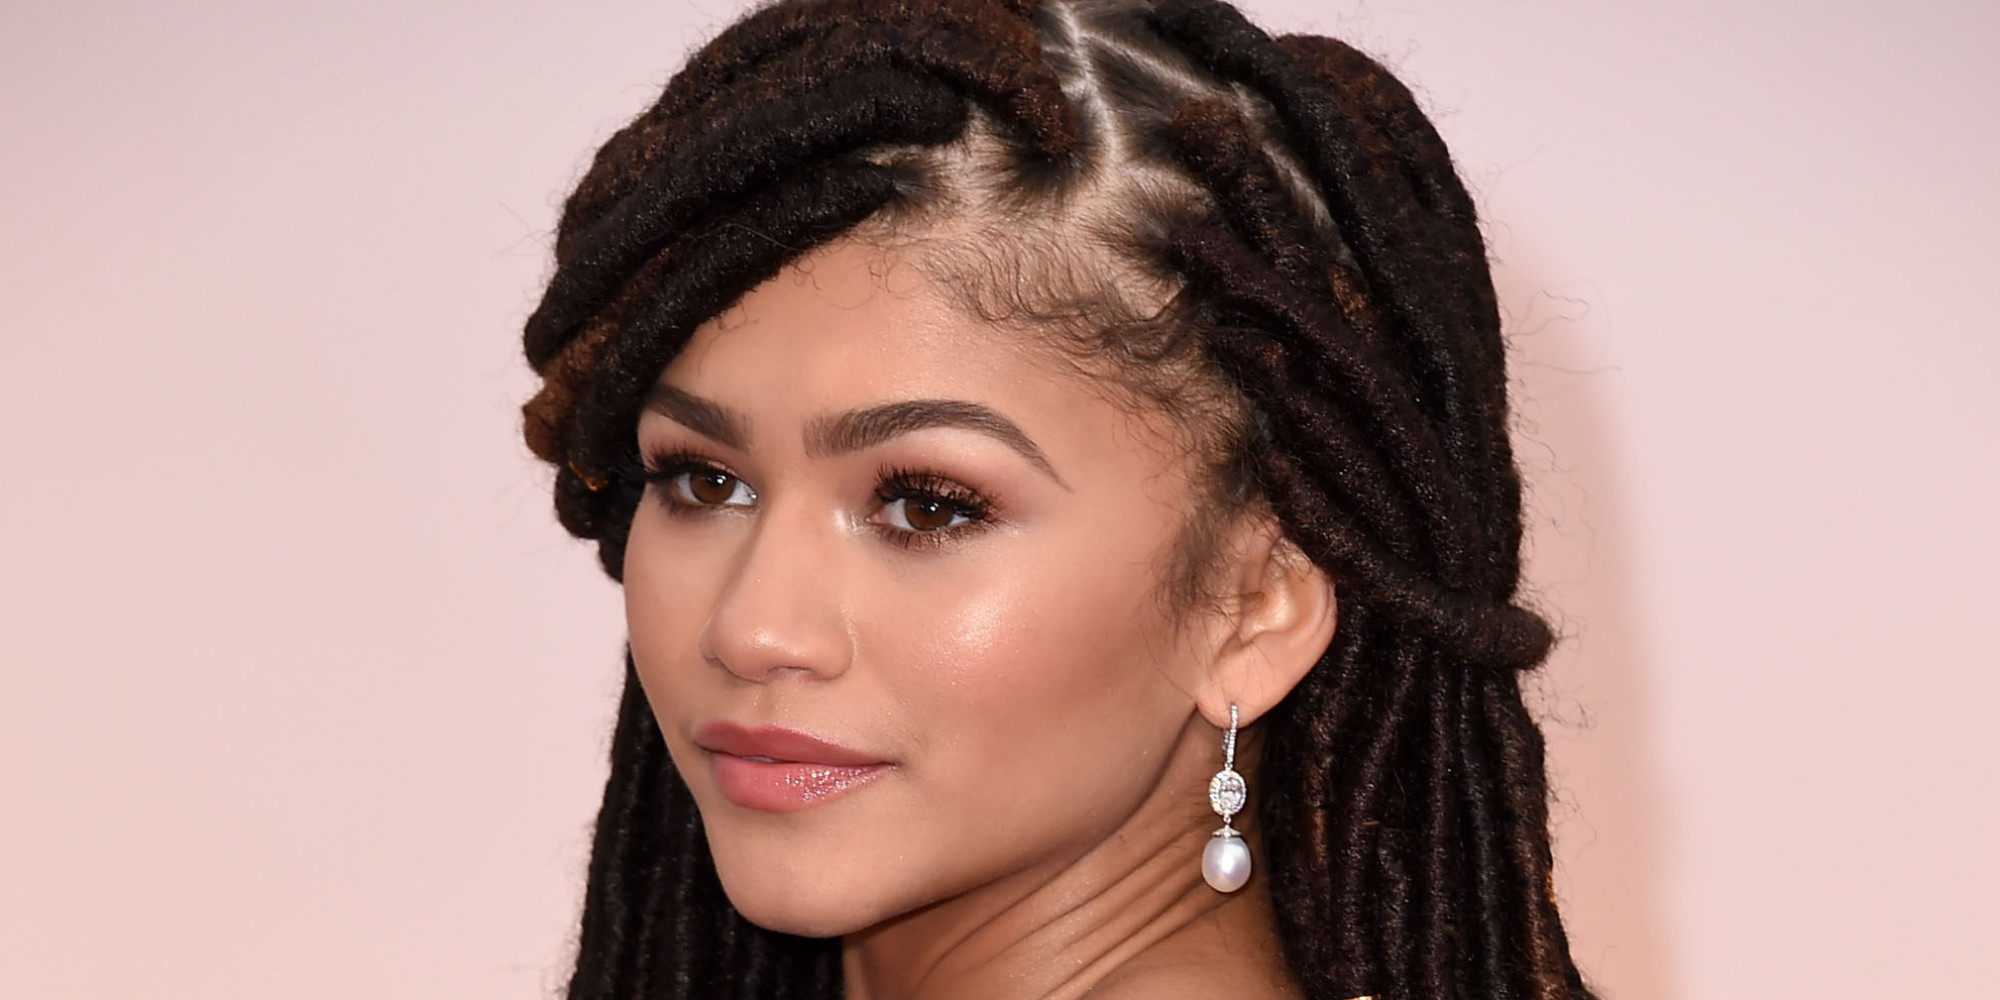 Zendaya. The actress was born to a black father and white mother.